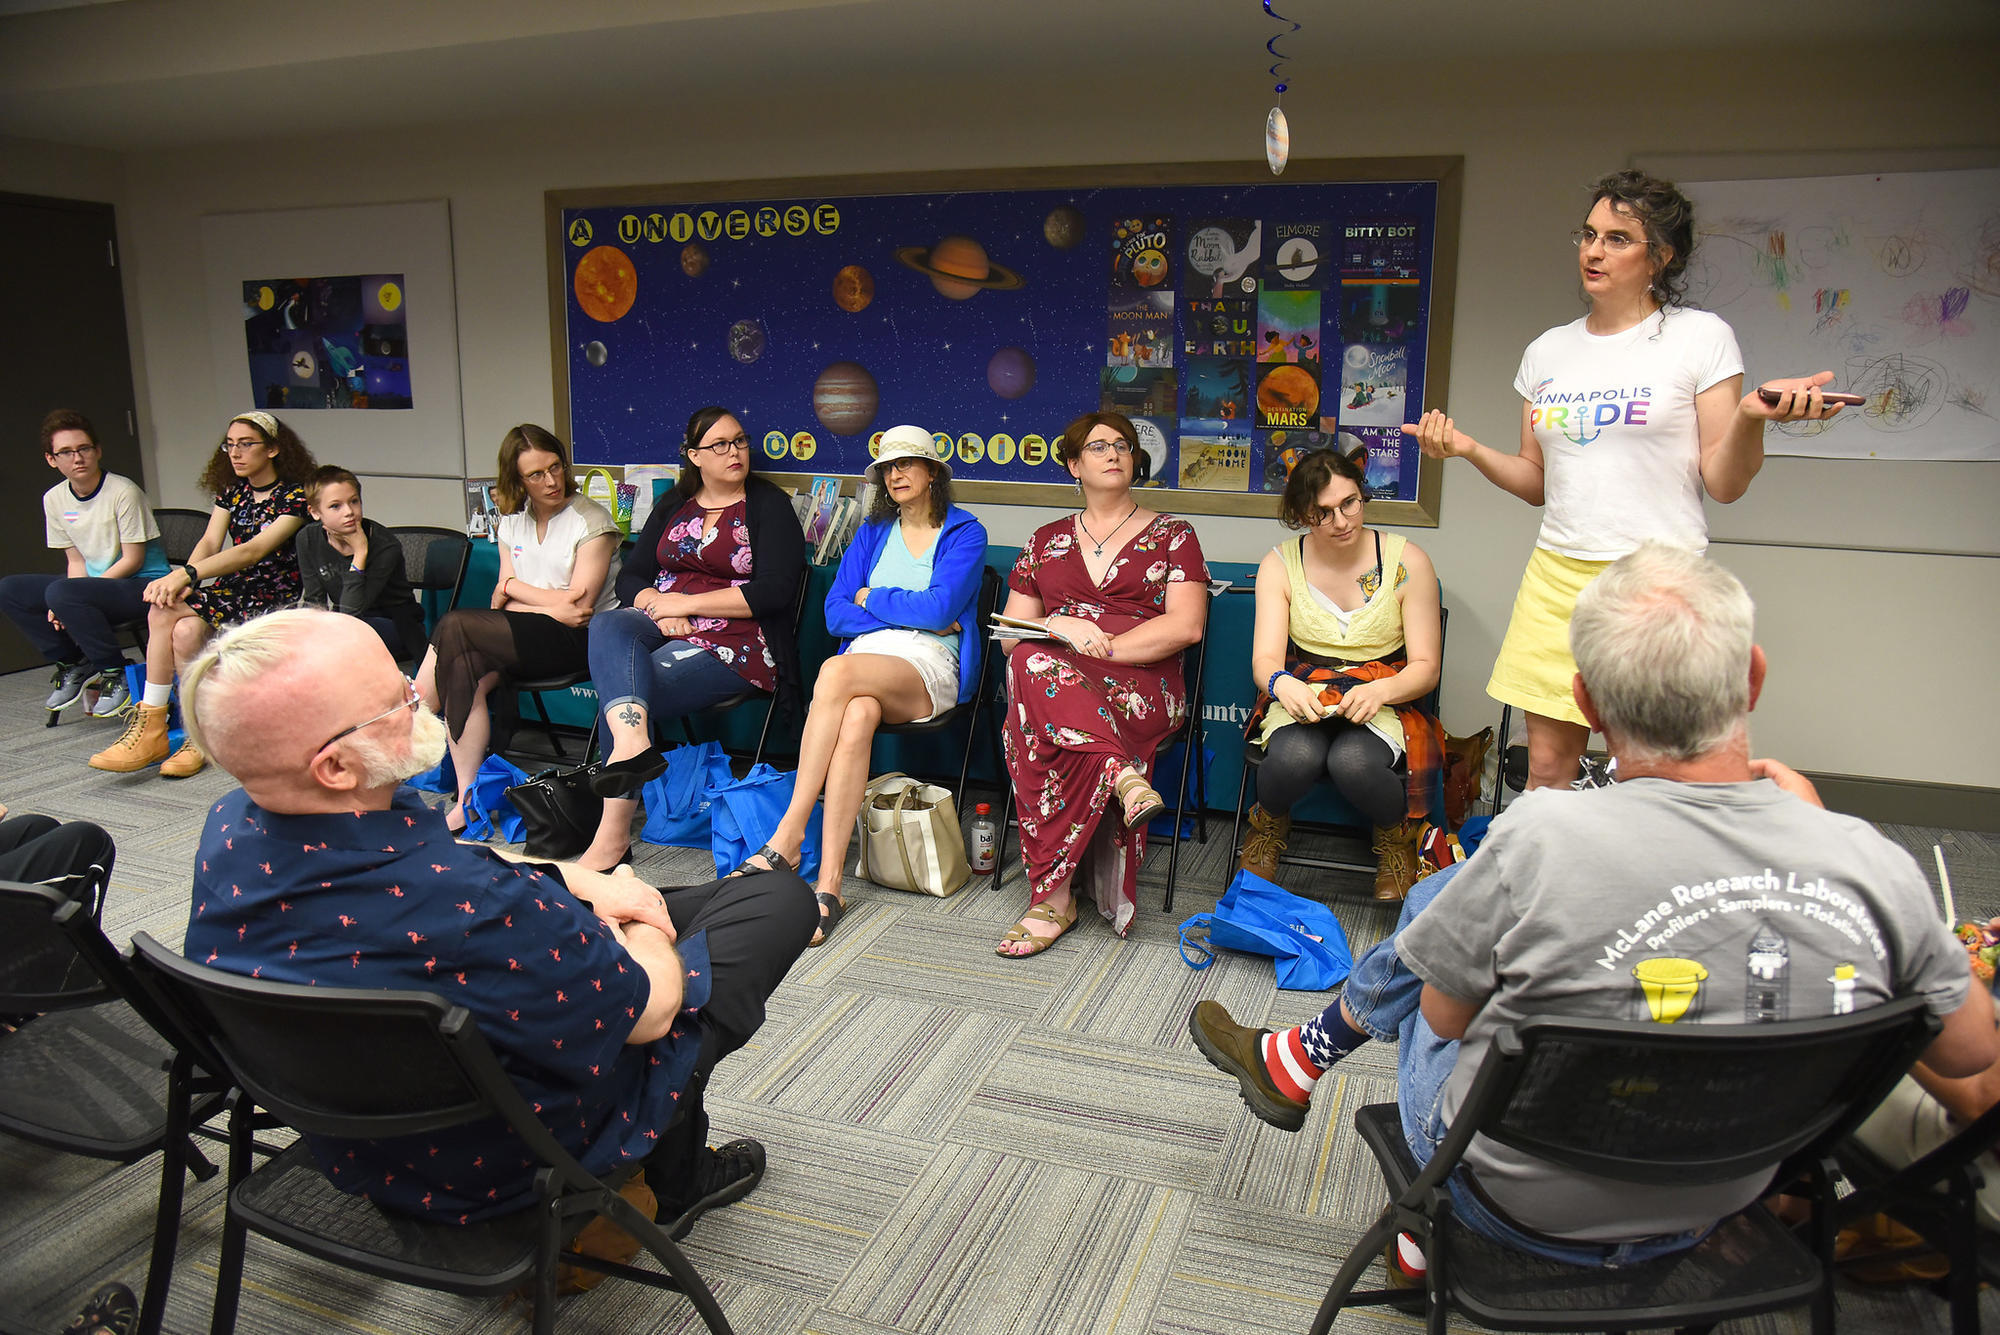 Between the lines: Anne Arundel County library emails show struggle, resistance to LGBTQ programs